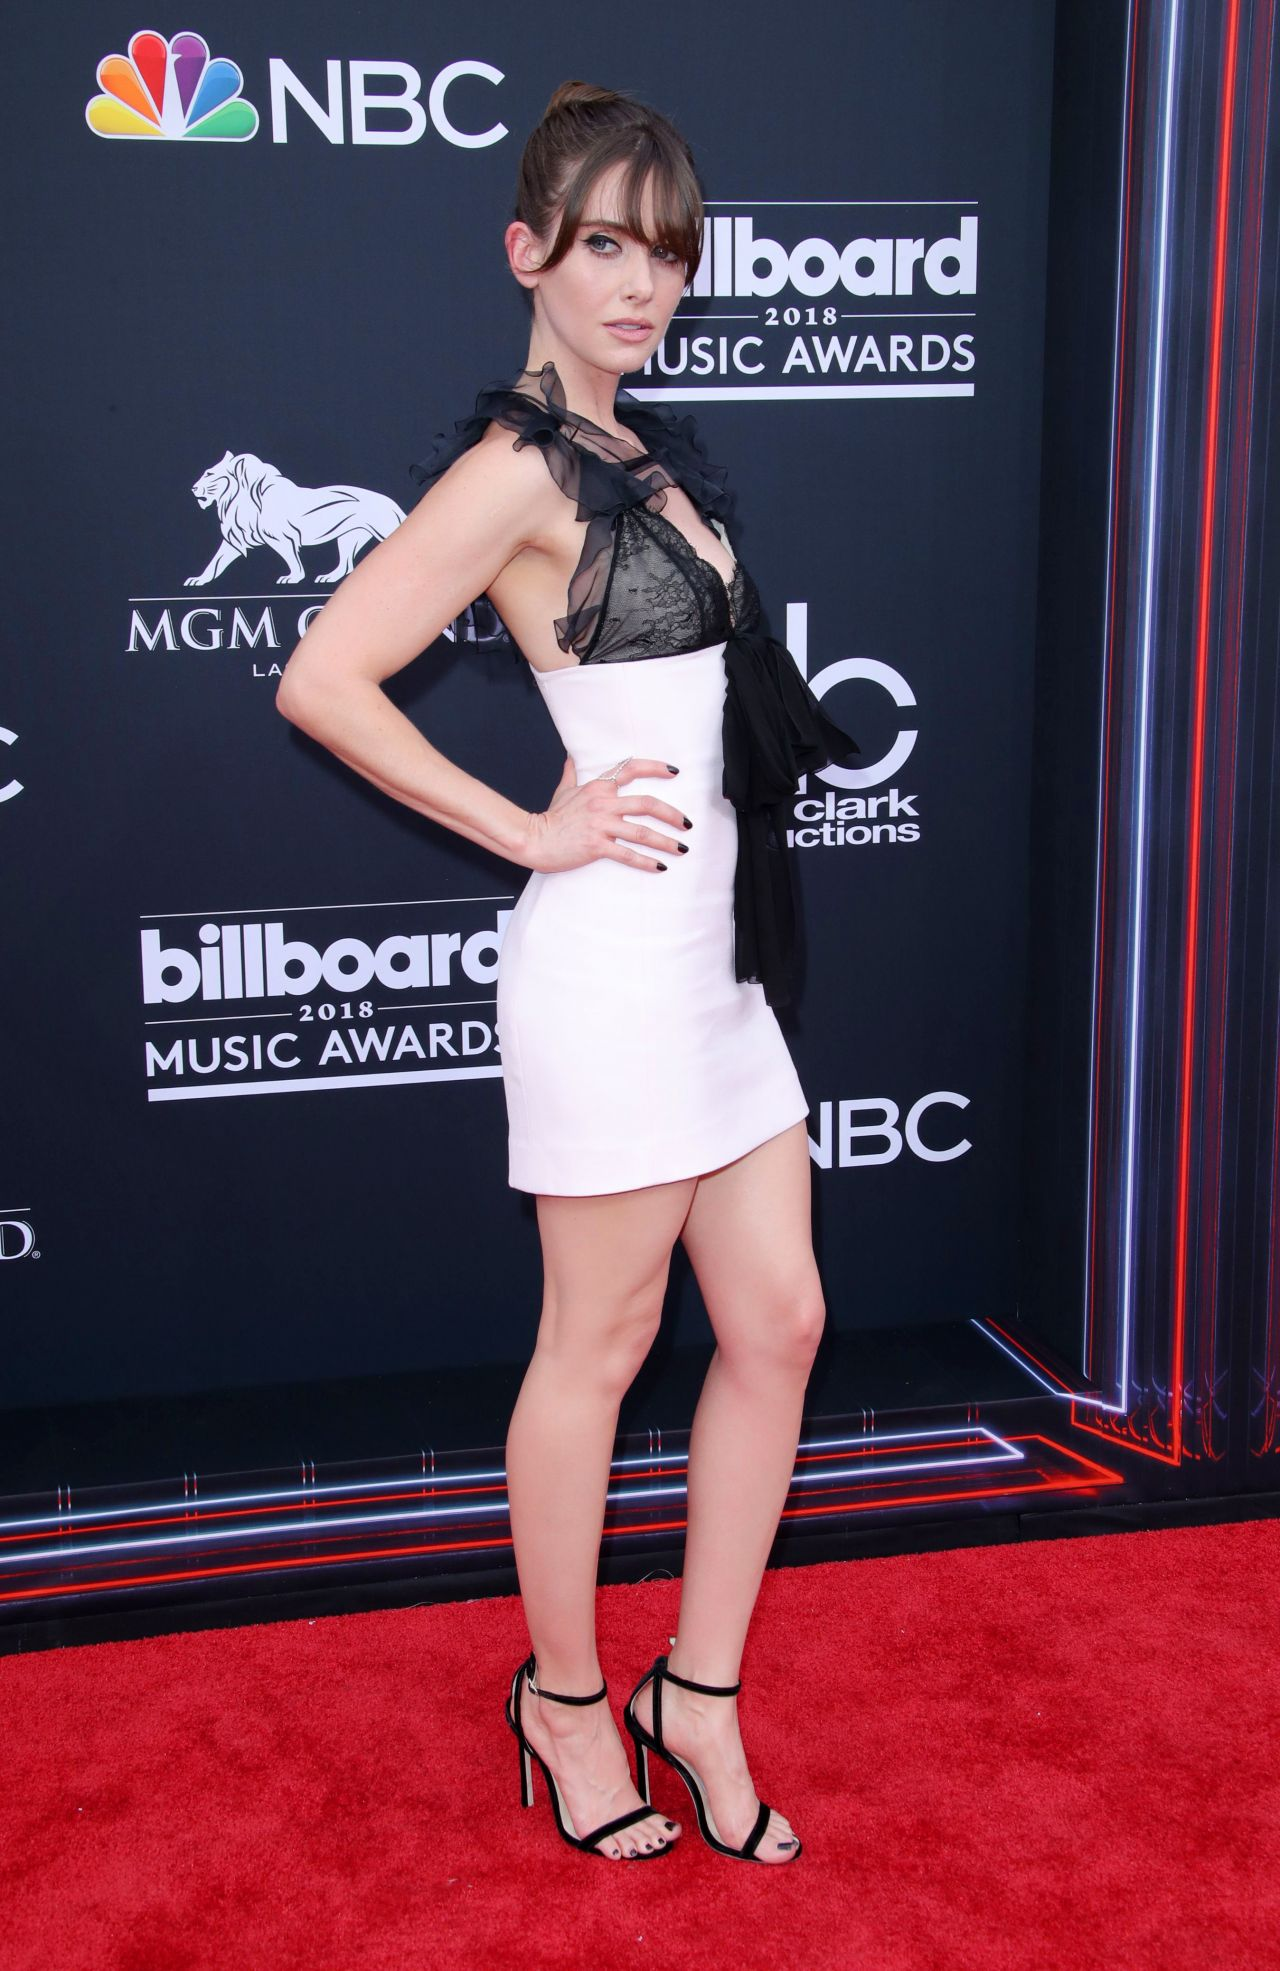 http://celebmafia.com/wp-content/uploads/2018/05/alison-brie-2018-billboard-music-awards-in-las-vegas-15.jpg